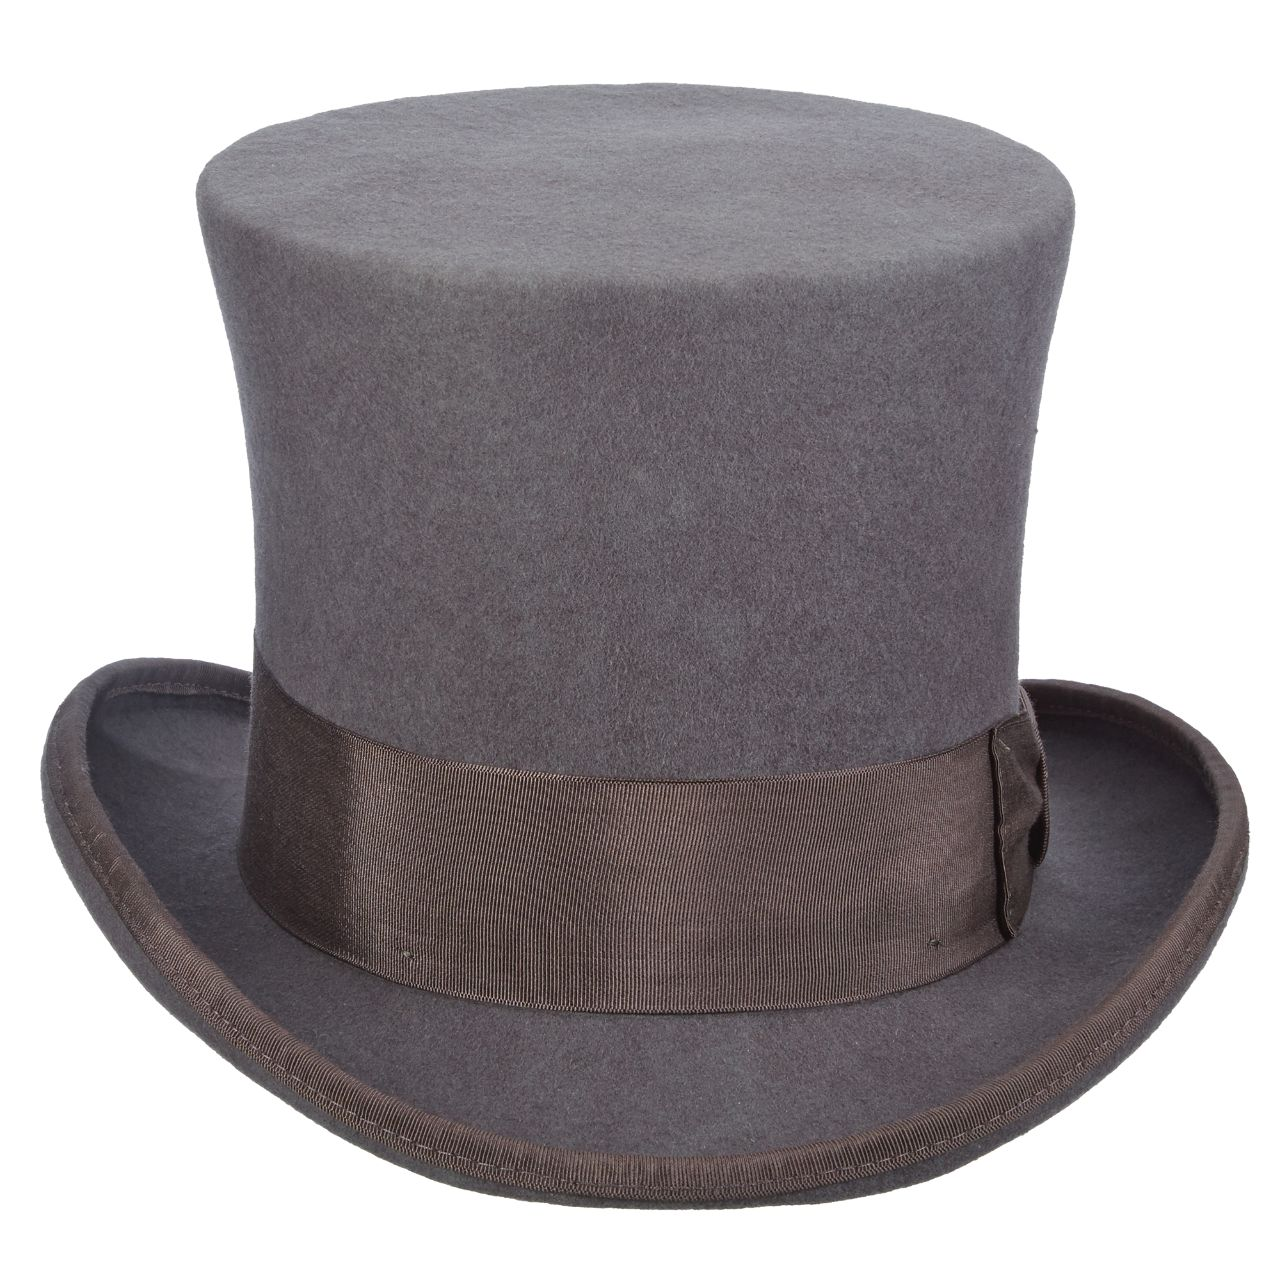 ad446a3a732 Wool Felt Top Hat with 7 inch Crown Grey. WF567 GREY FT